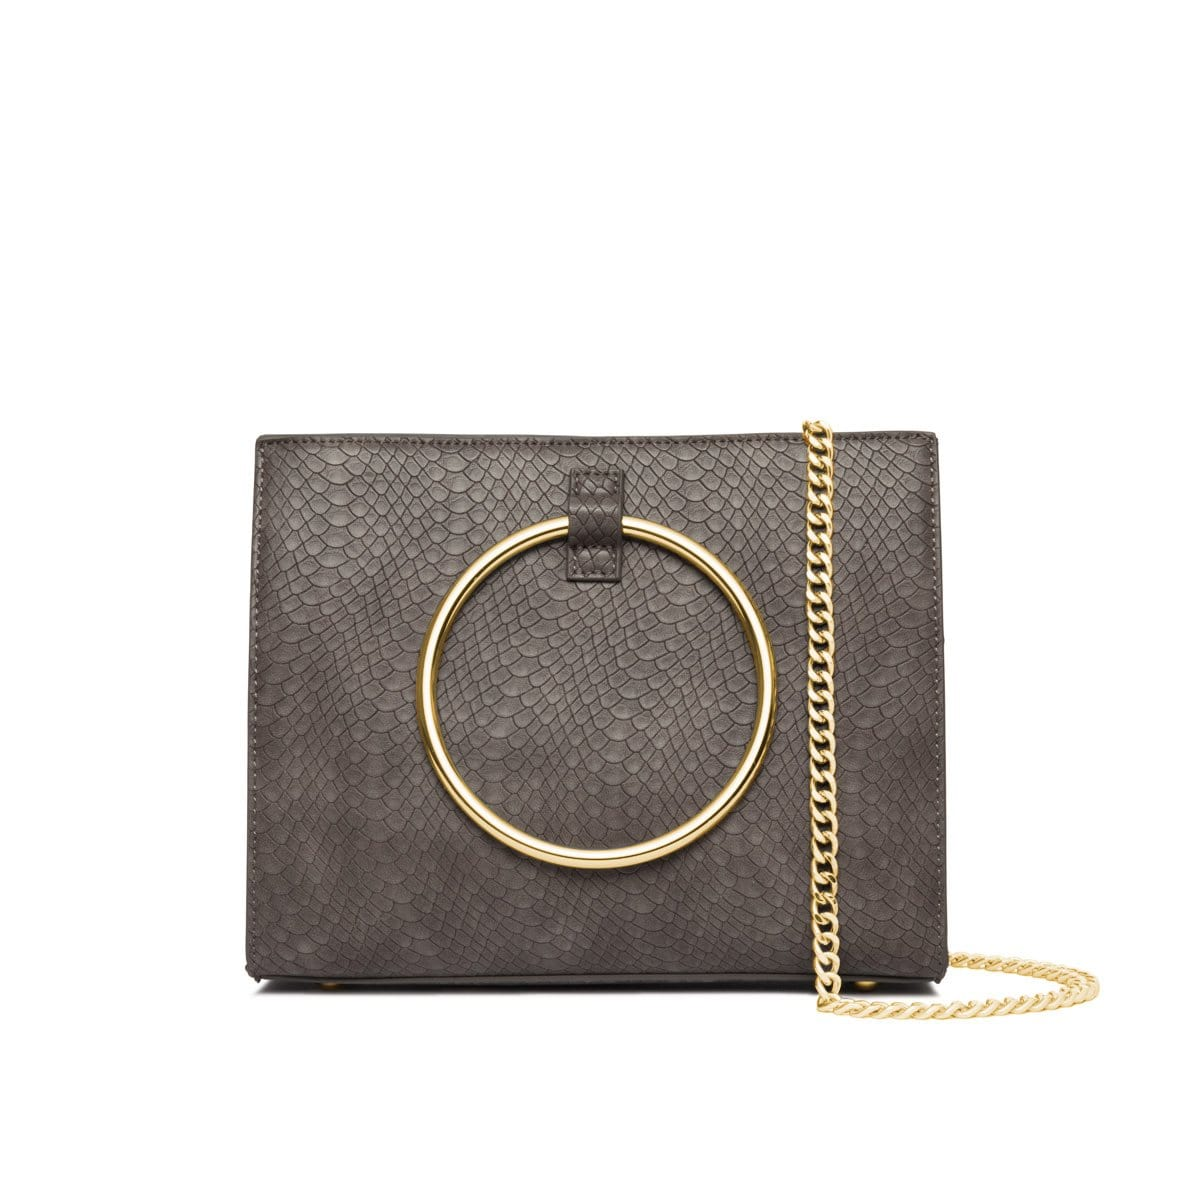 Moda Top Handle bag (Frost Grey/Yellow Gold)